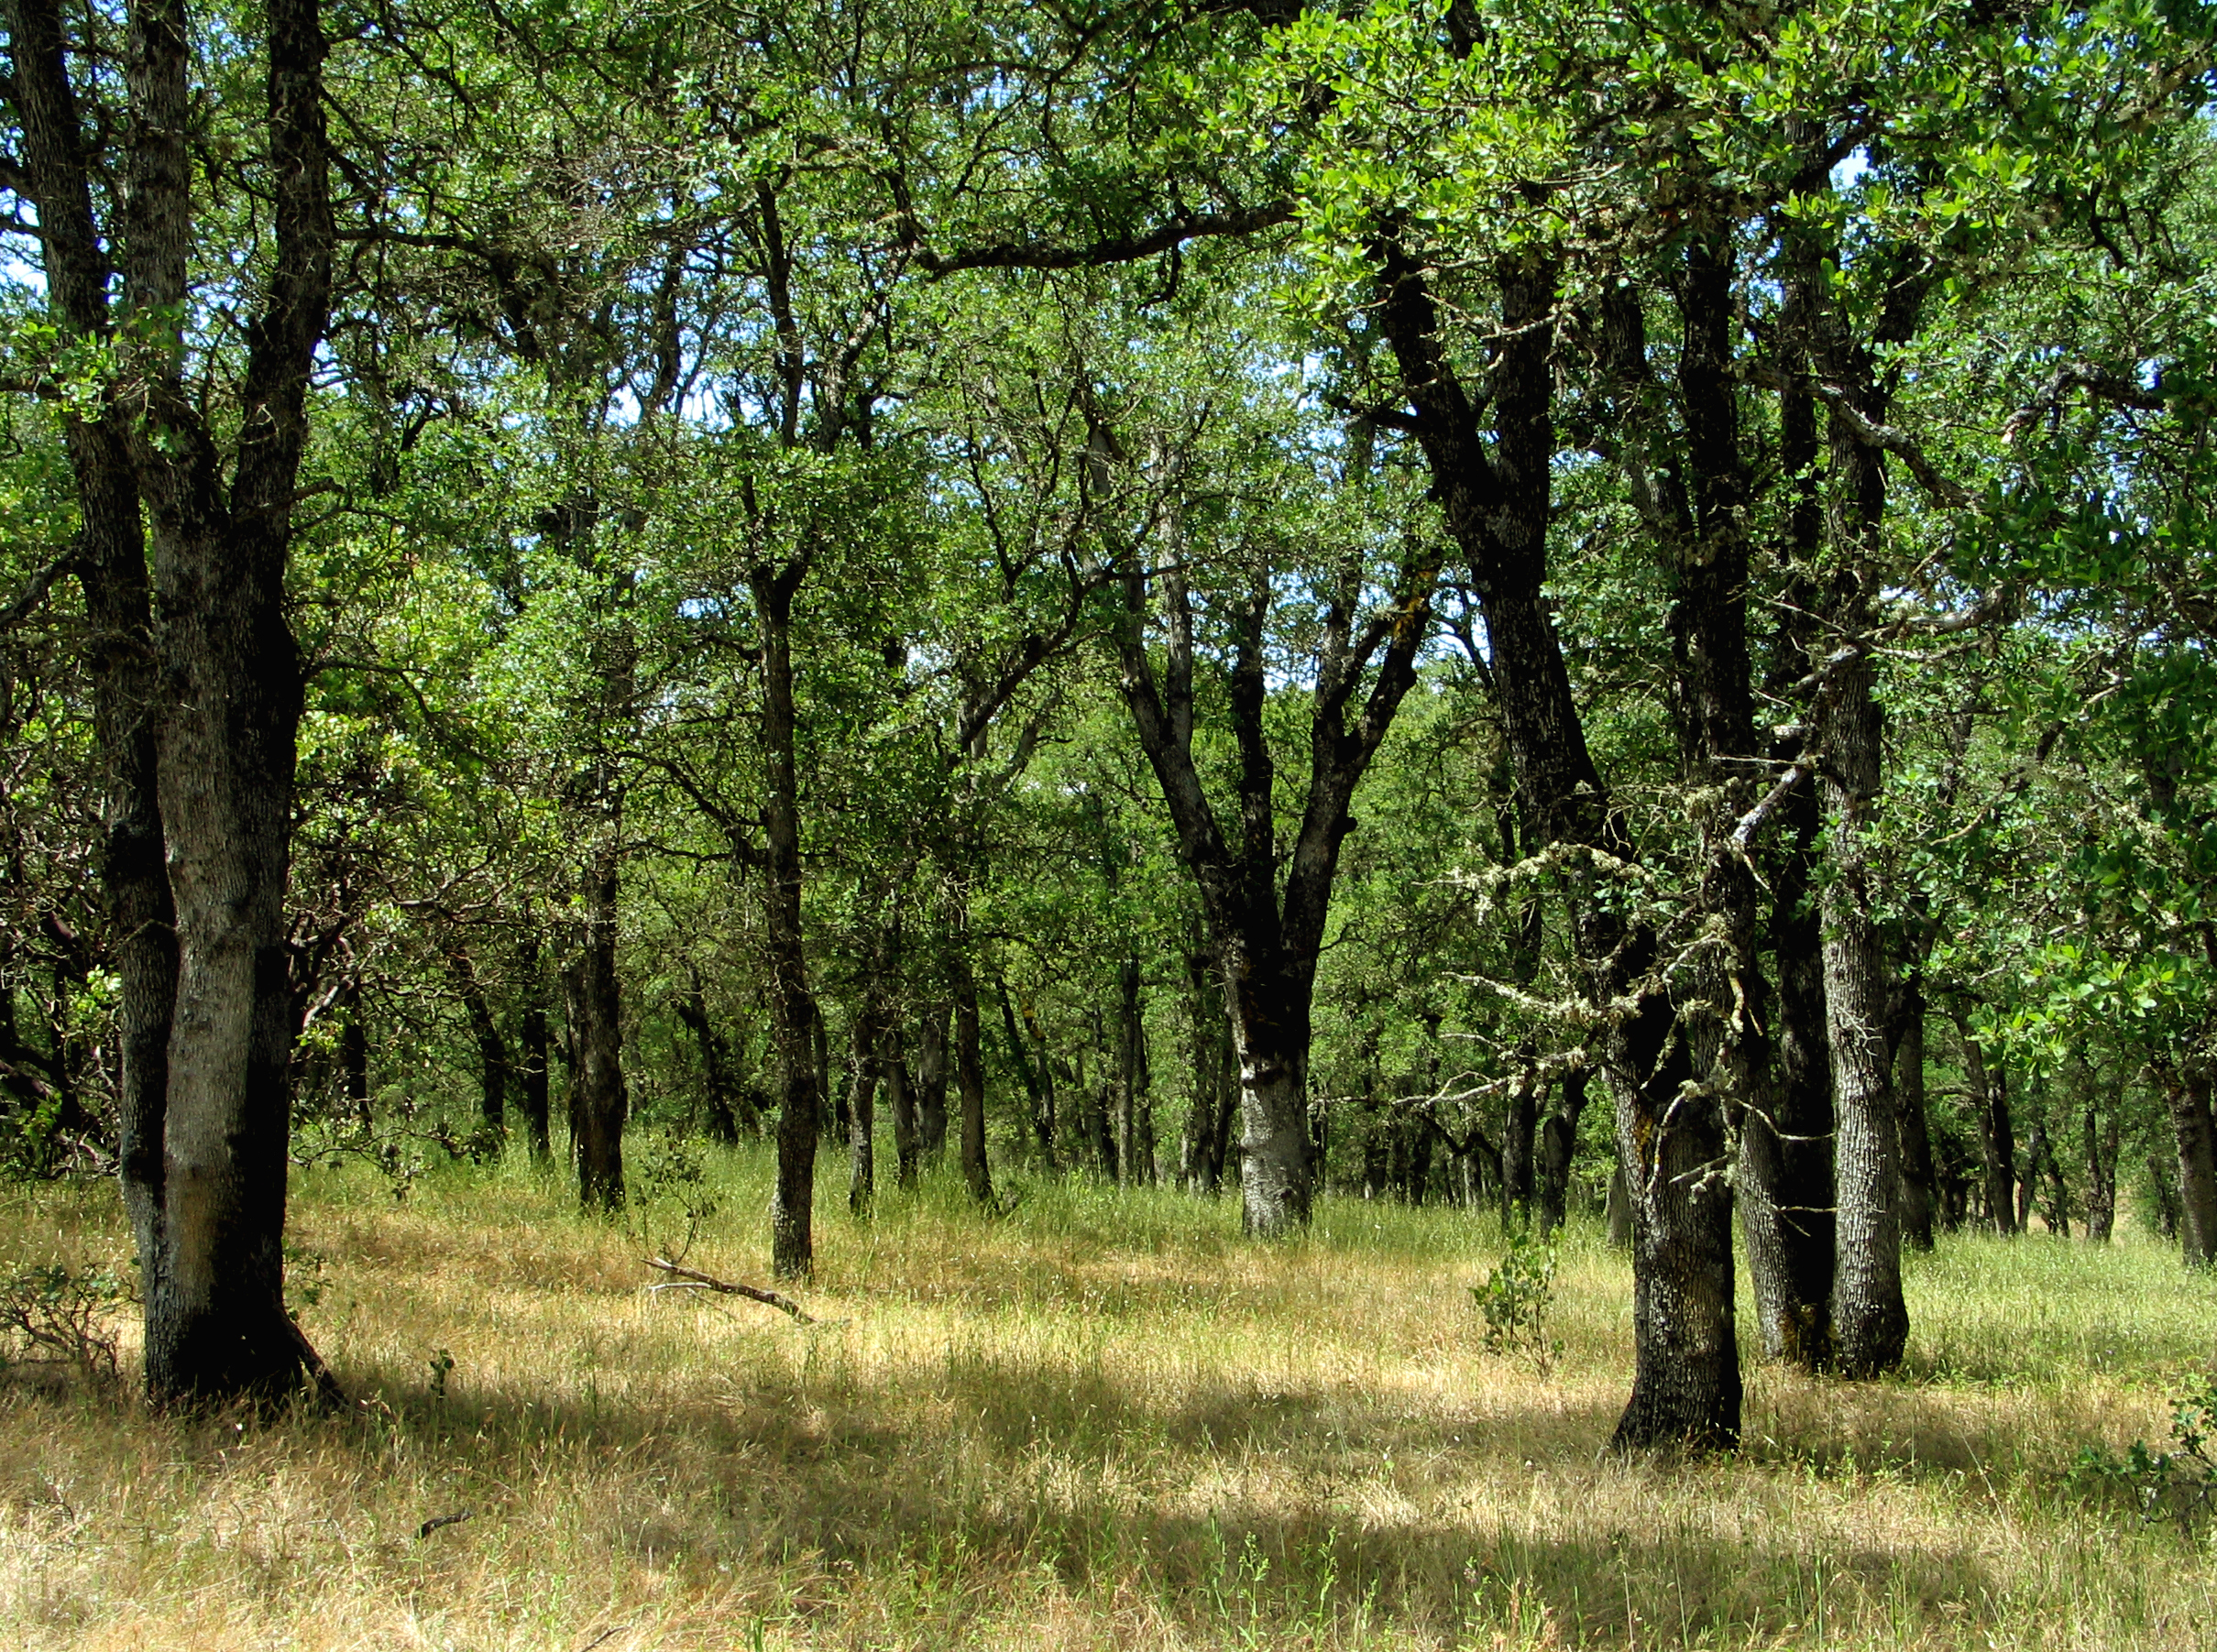 These blue oak trees are a bit overcrowded and miss fire, but they can still deliver a good acorn harvest